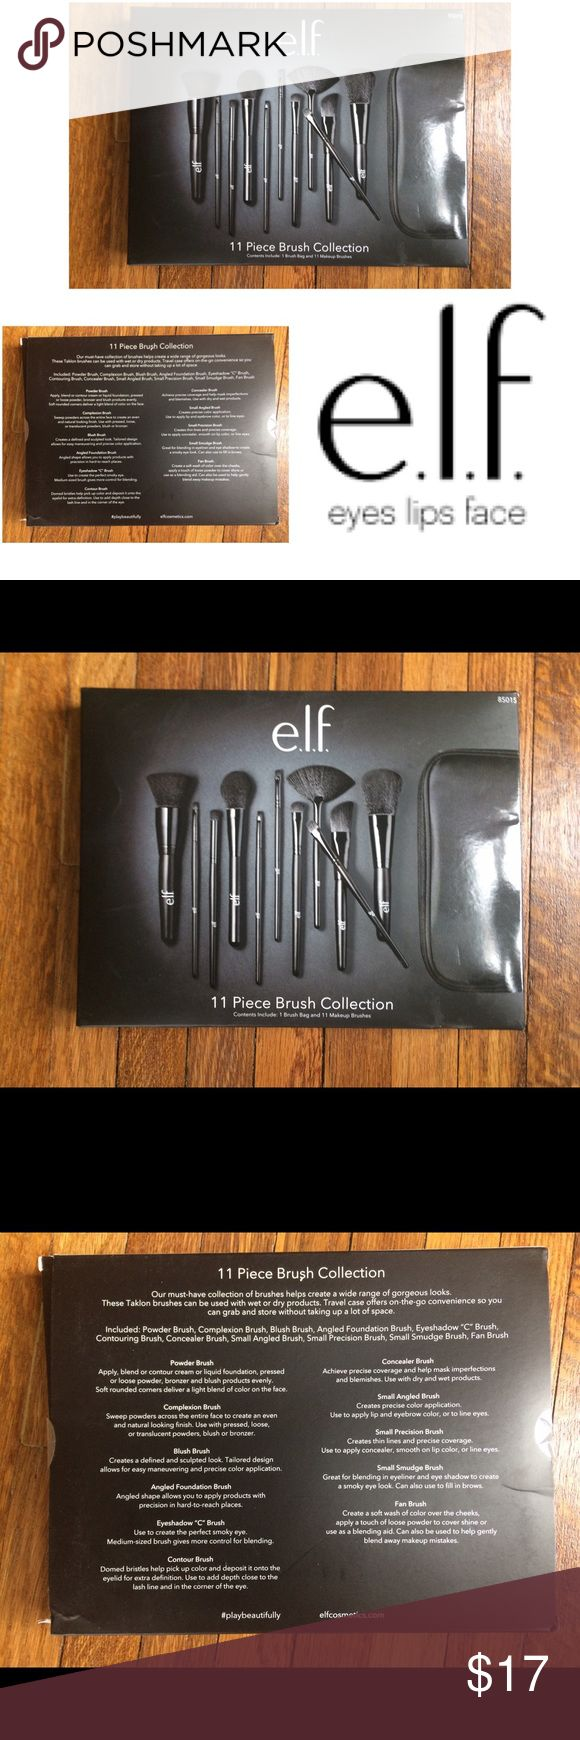 New ELF 11-Piece Brush Set & Brush Case New with tags, never opened, 11-piece ELF Brush set with brush case. Love these brushes! I use this exact set. Originally $32.  I put together my favorites packages for my clients, and often have extra products that I sell on here! I price my items lower to accommodate for shipping. I'm open to reasonable offers, especially if you're bundling with other items - you'll pay the same in shipping if you buy one or multiple items from my closet! ELF Makeup…